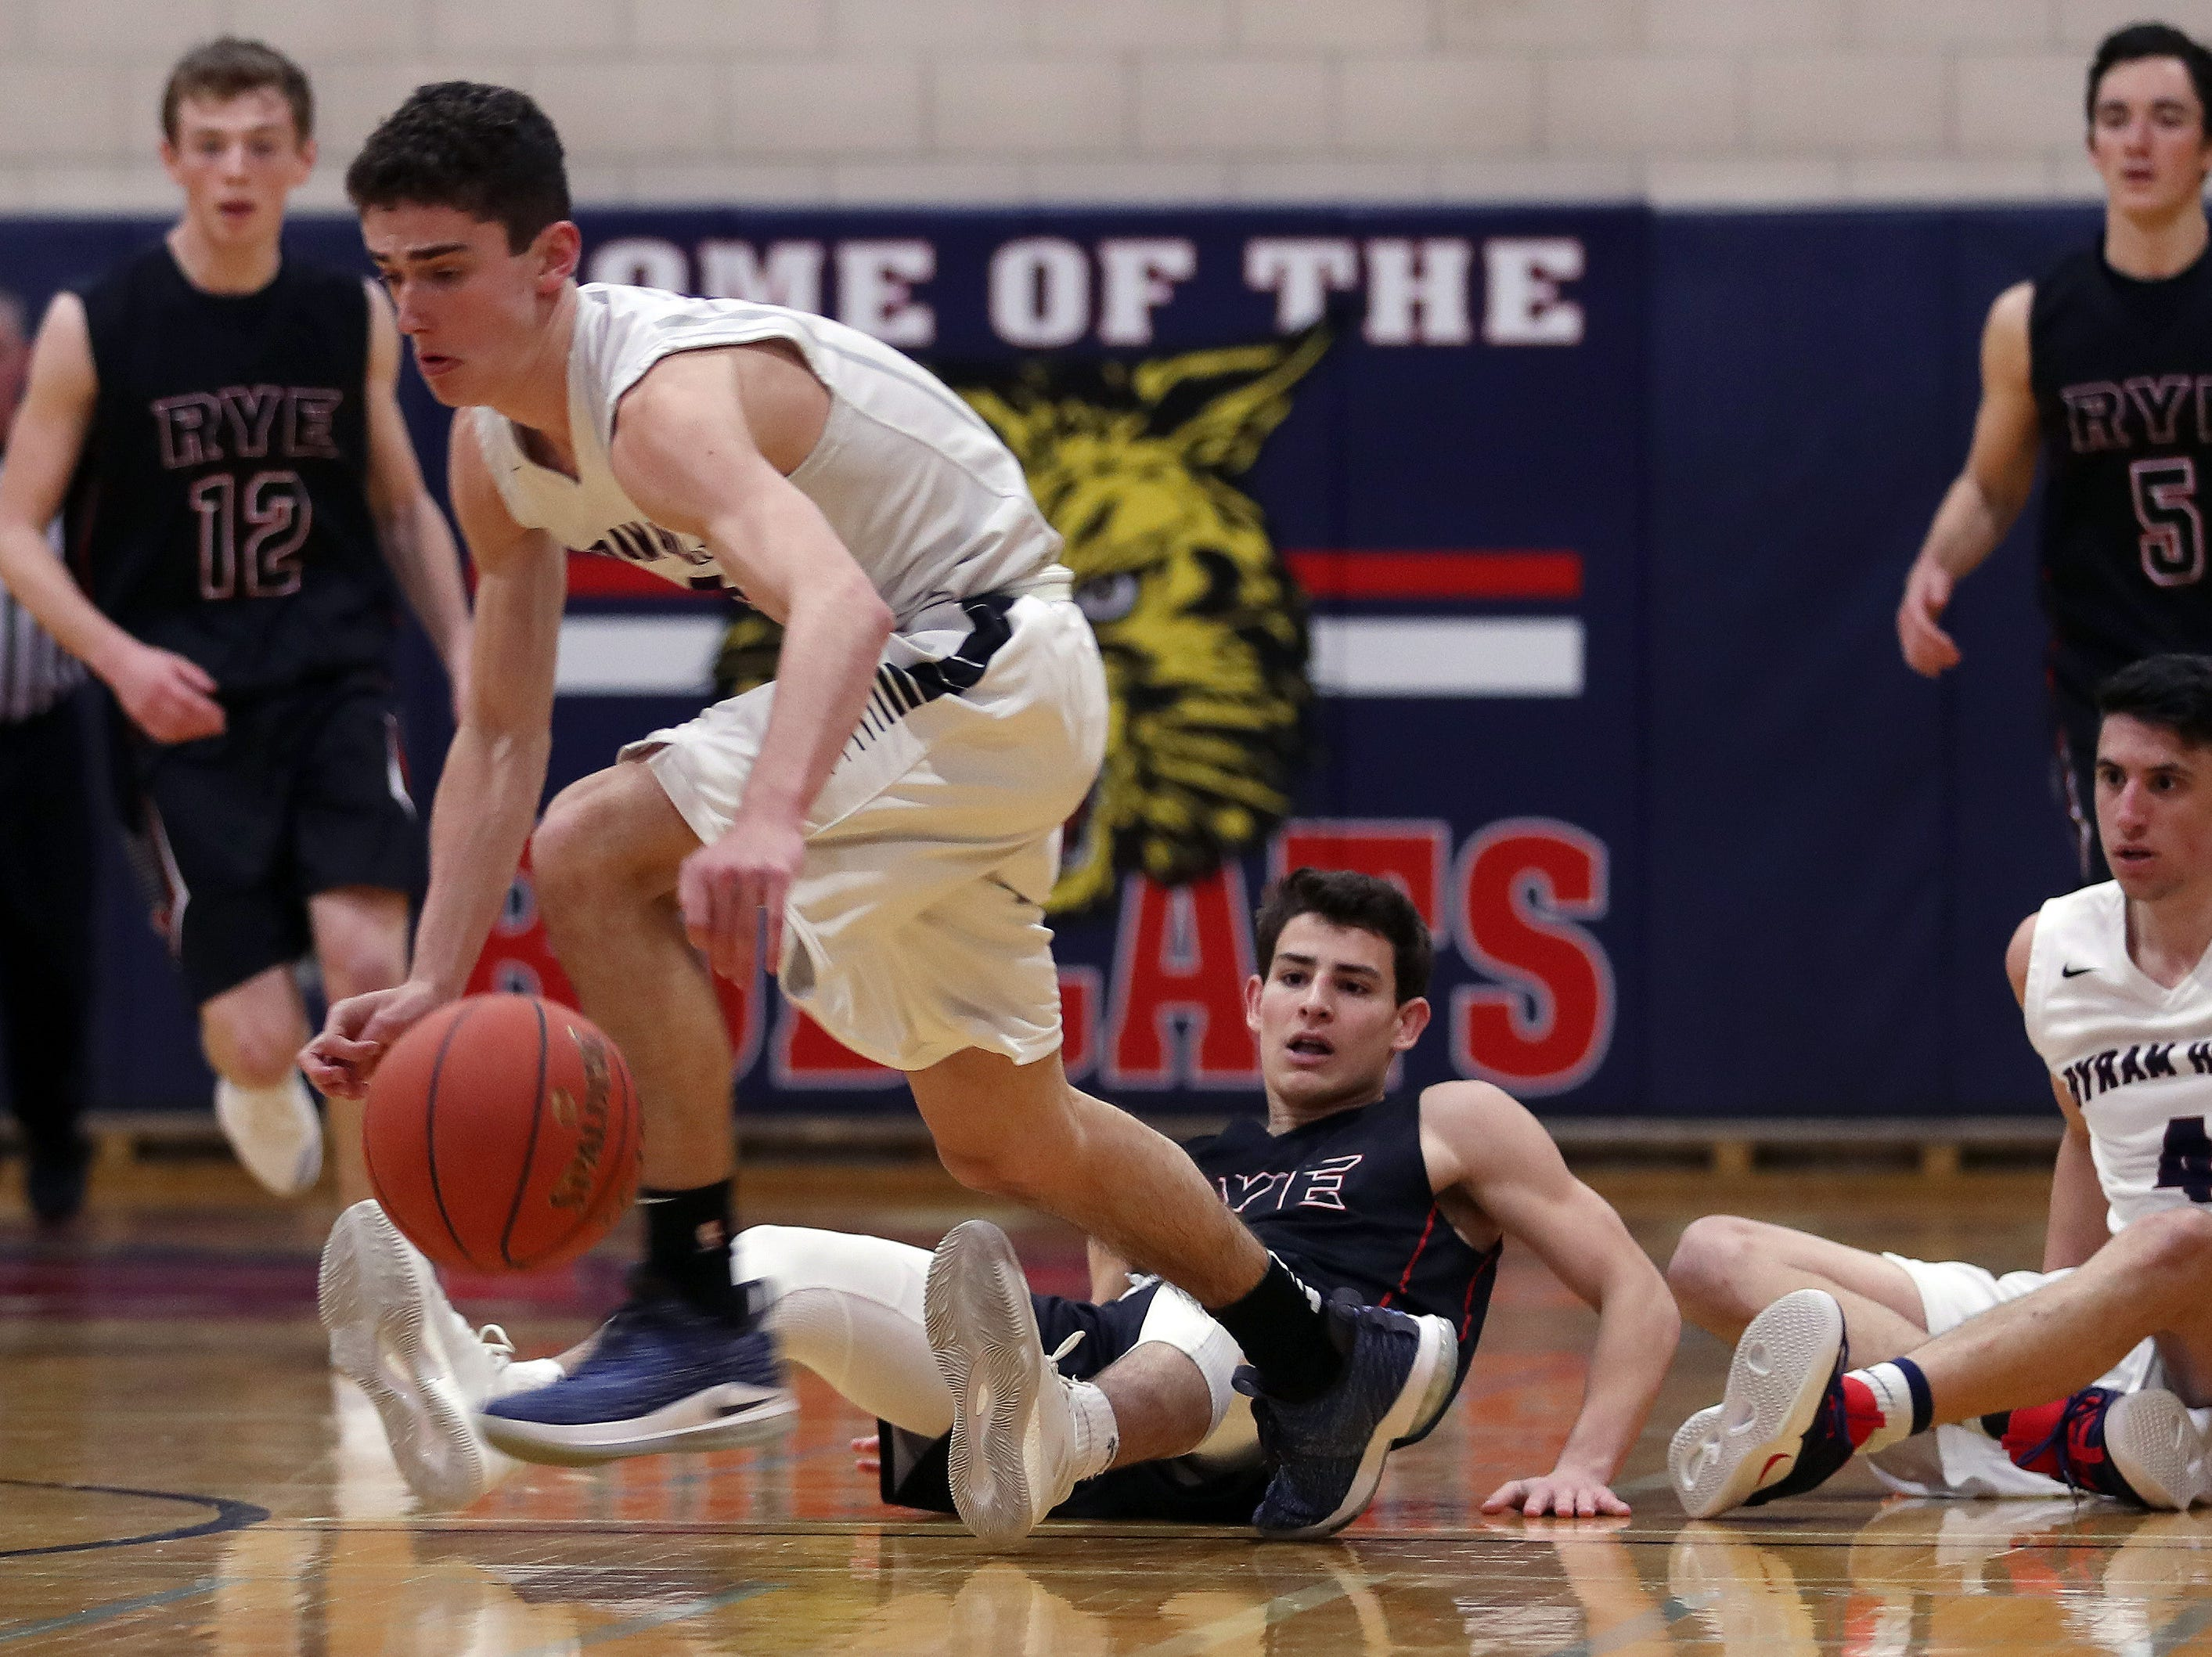 Byram Hills' Sam Goldman (5) comes away with a loose ball against Rye during boys basketball action at Byram Hills High School in Armonk Jan. 10, 2019. Byram Hills won the game.